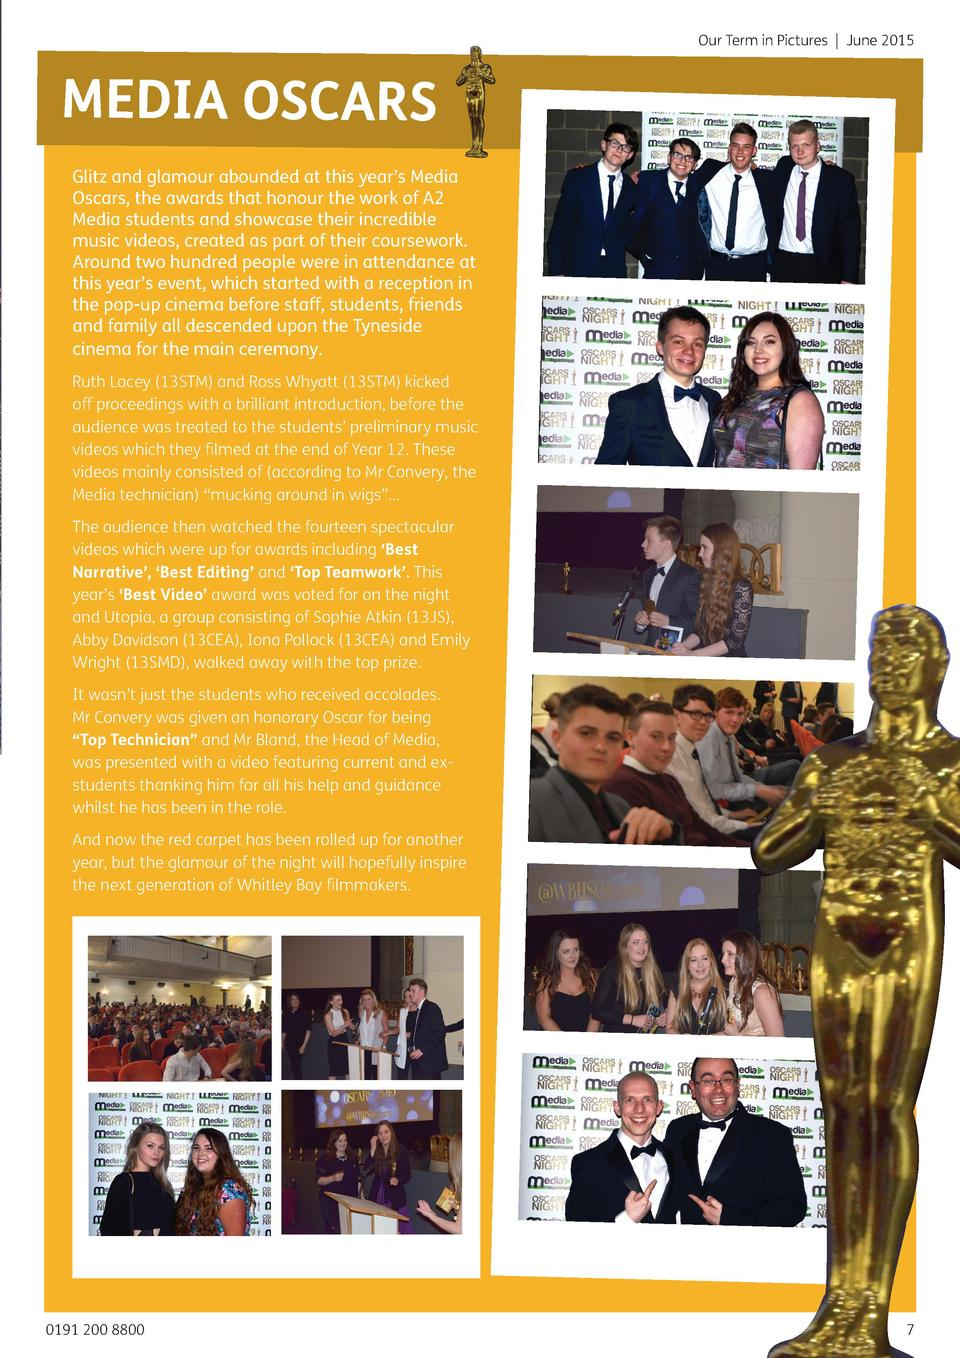 Our Term in Pictures   June 2015  MEDIA OSCARS Glitz and glamour abounded at this year   s Media Oscars, the awards that h...